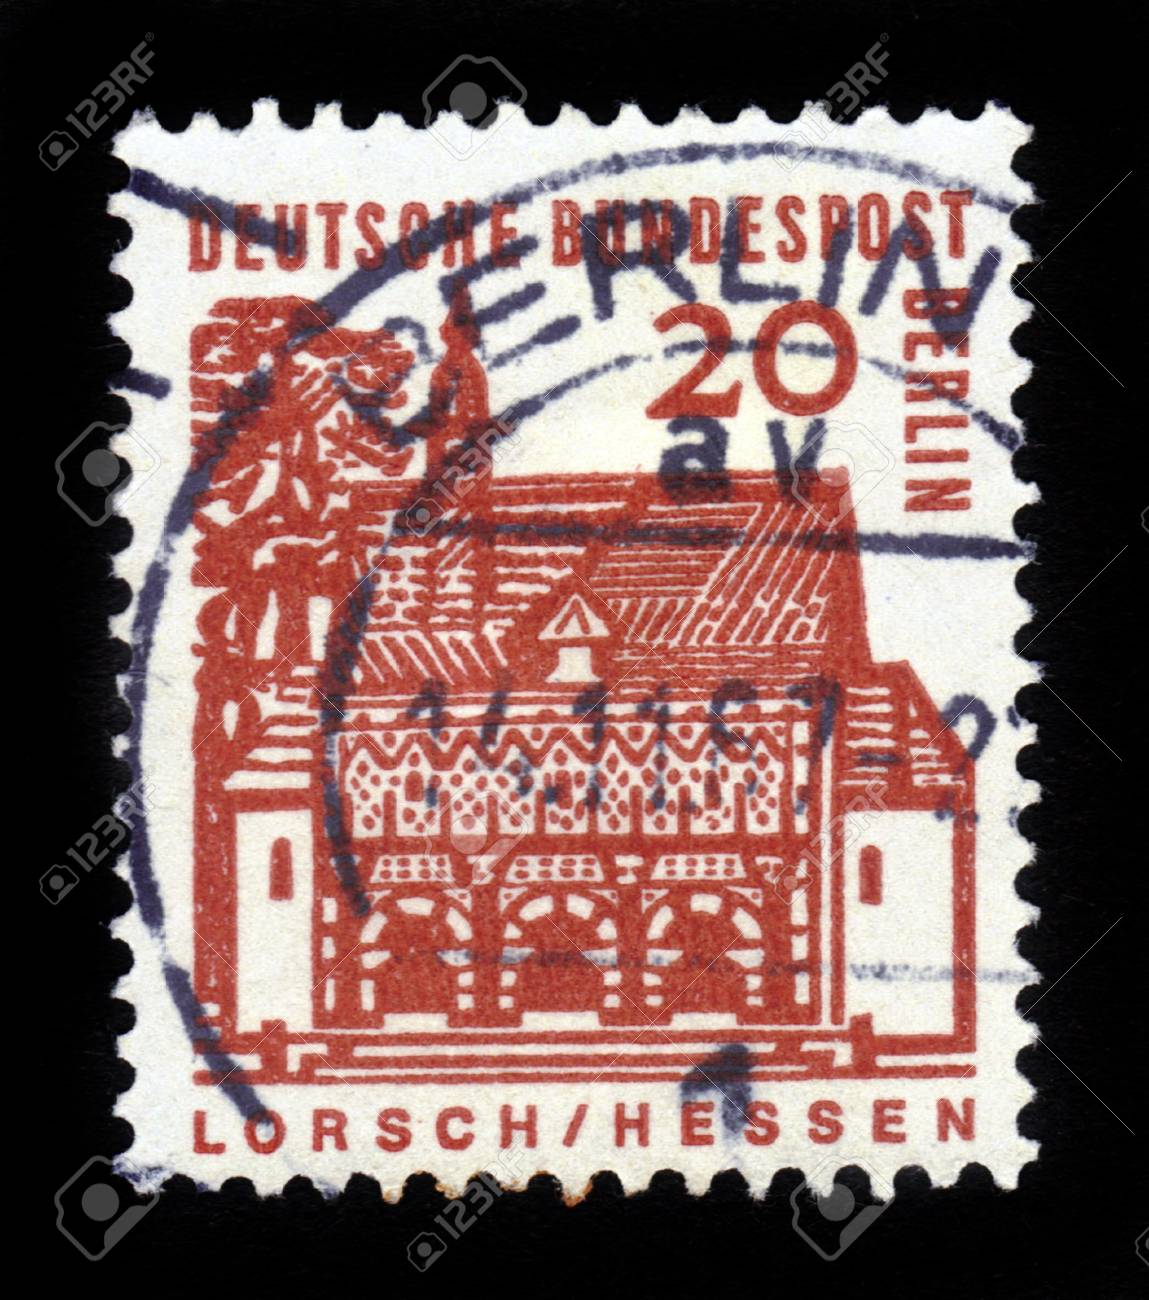 GERMANY-CIRCA 1964 A stamp printed in Germany shows image of the Abbey of Lorsch is a former Imperial Abbey in Lorsch, Germany, circa 1964  Stock Photo - 17326948